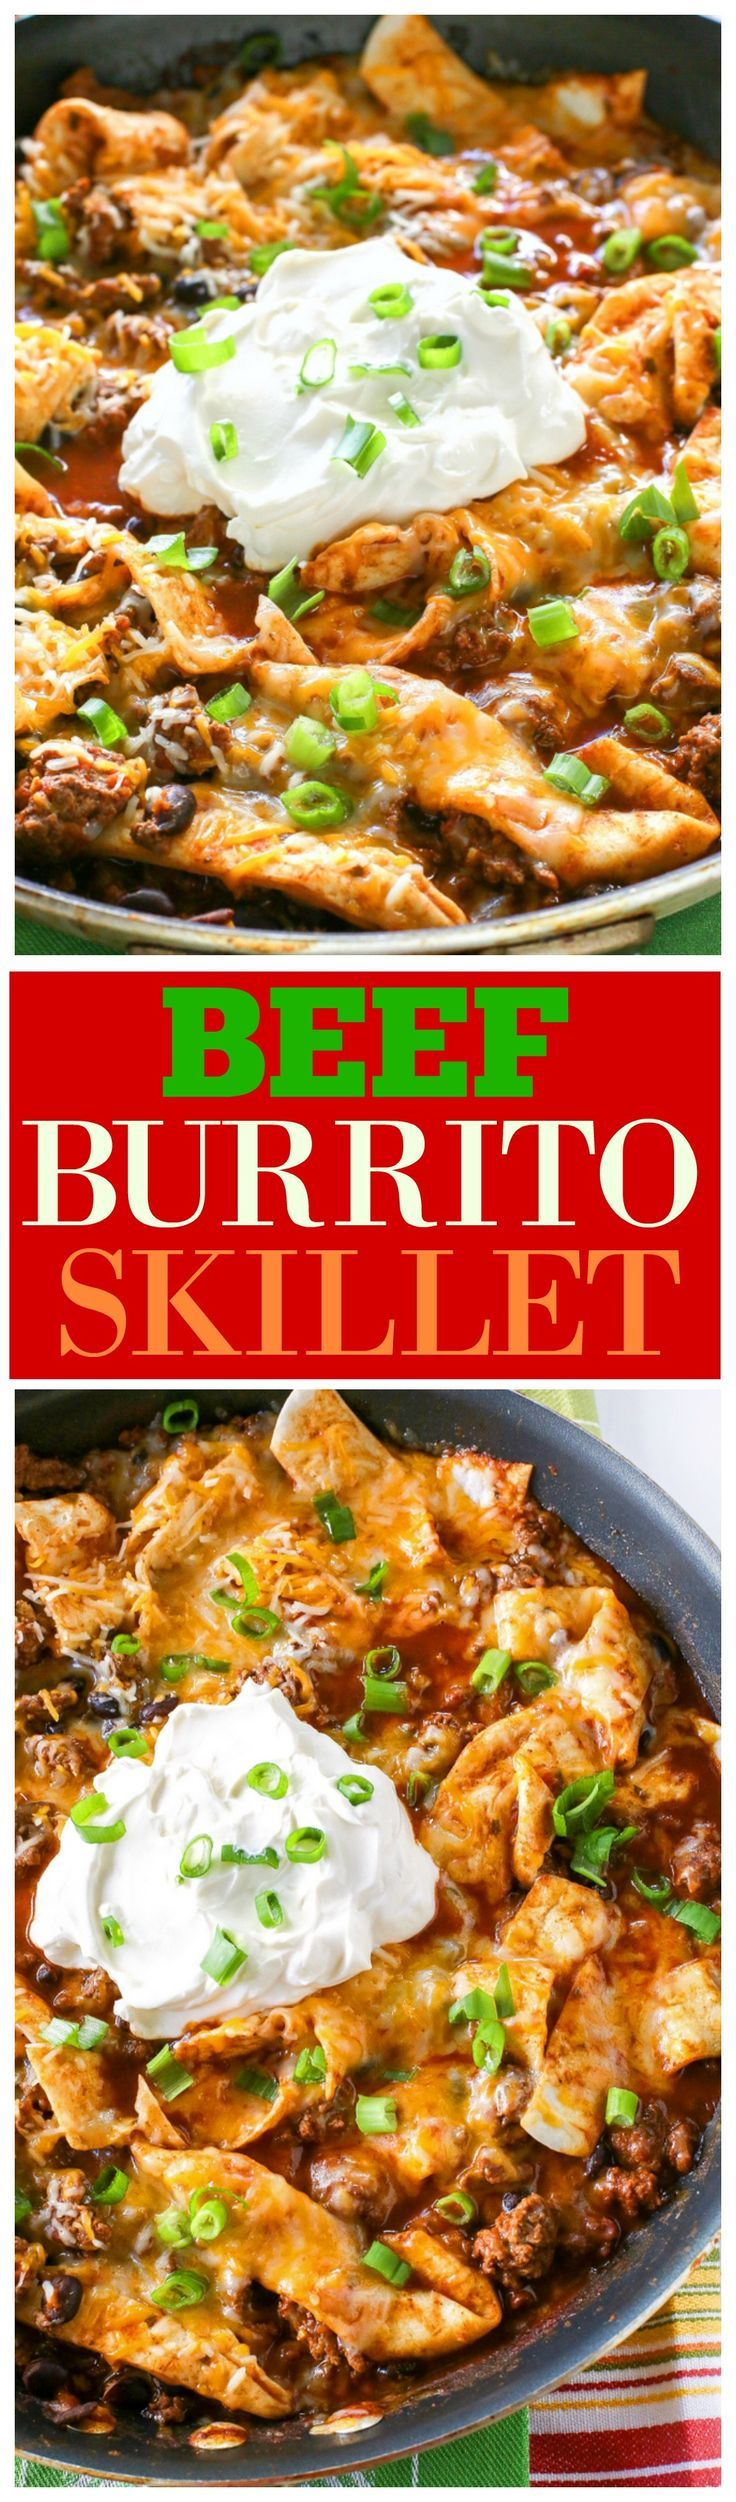 This Easy Beef Burrito Skillet has beef, black beans, salsa, and tortillas all cooked in one skillet. The tortillas turn soft and almost like a dumpling. This tasty dish is done in less than 20 minutes. the-girl-who-ate-everything.com